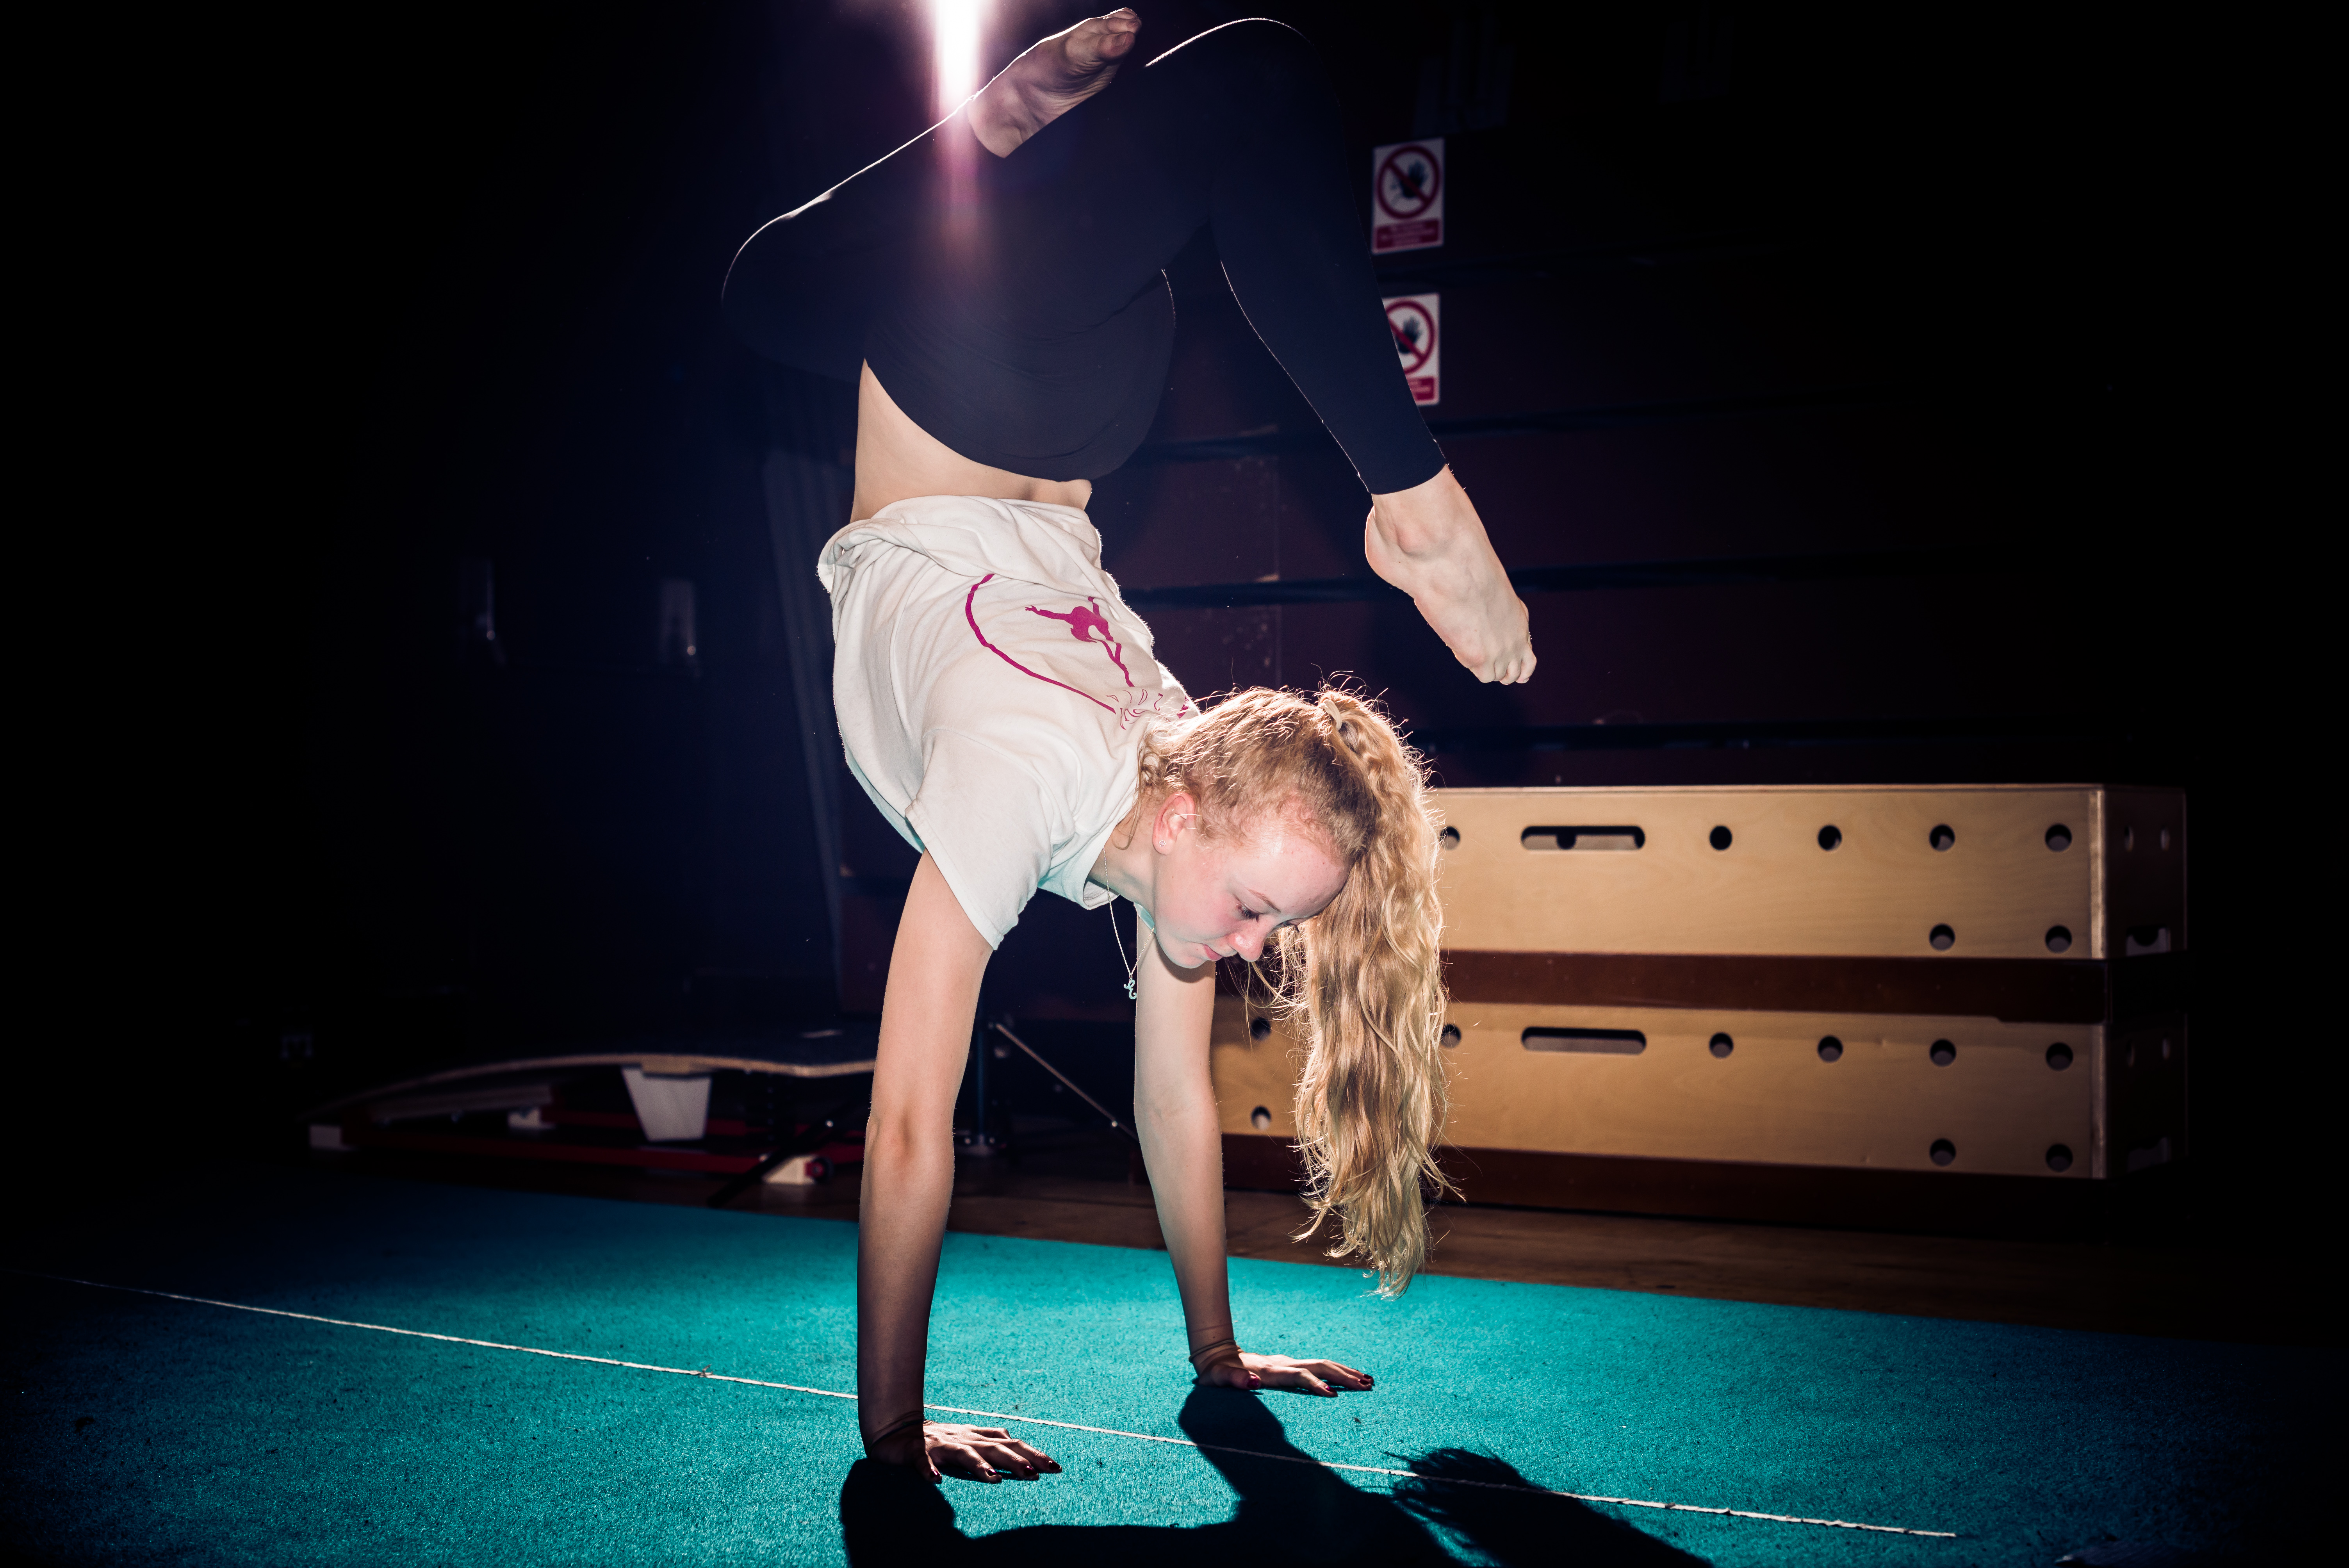 A young woman with long blonde hair performs a half handstand on a green mat